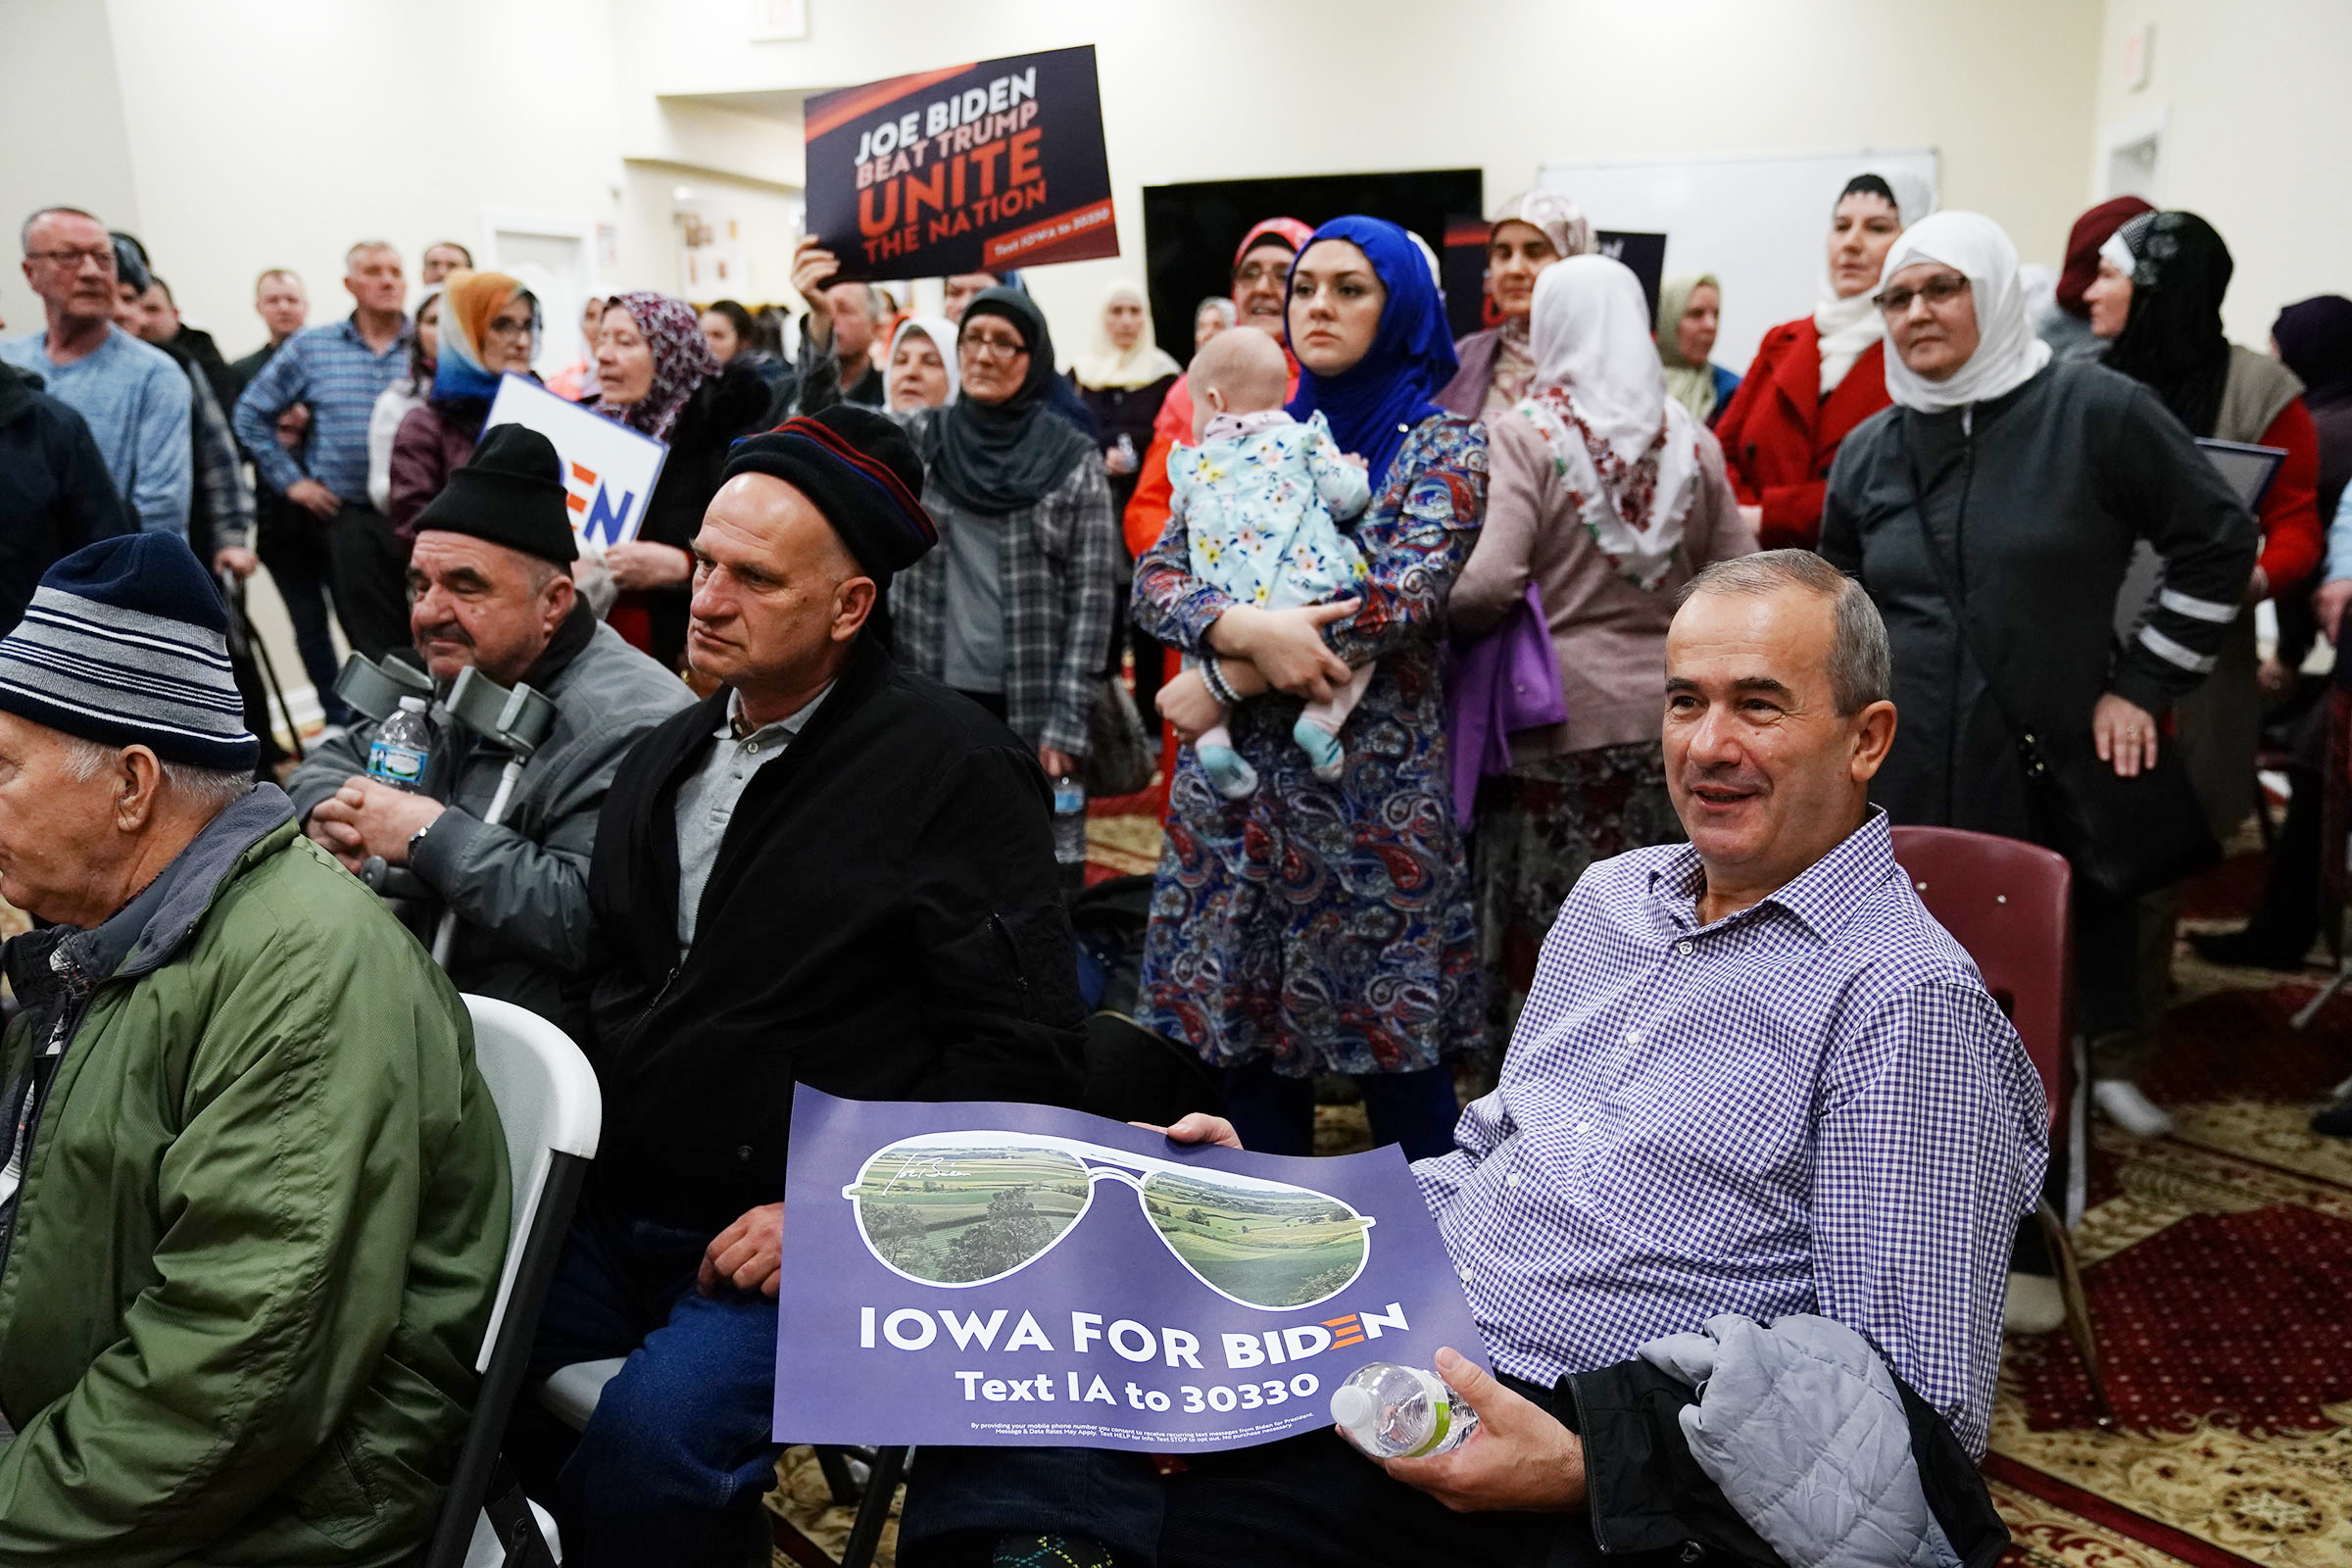 Participants hold campaign signs for Vice President Joe Bidenduring the first-in-the-nation Iowa caucus at the Islamic and Education Center Ezan mosque in Des Moines, Iowa on Feb. 3, 2020.